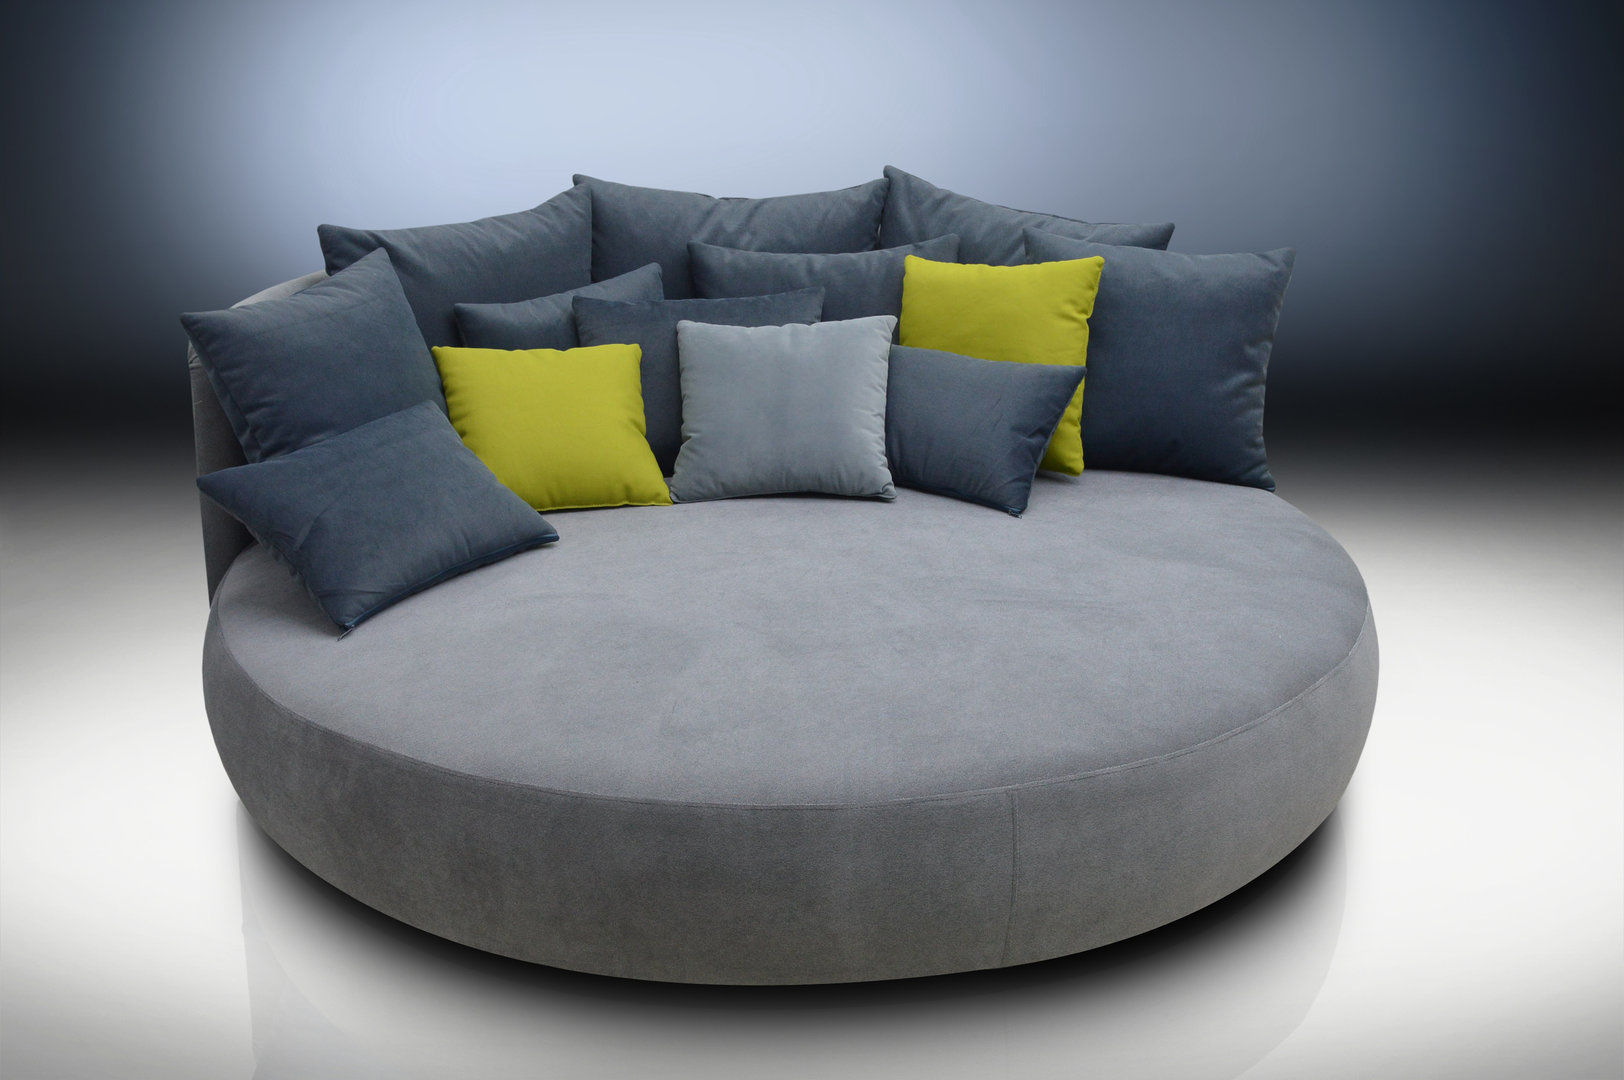 stunning compact sofa bed wallpaper-Fresh Compact sofa Bed Décor